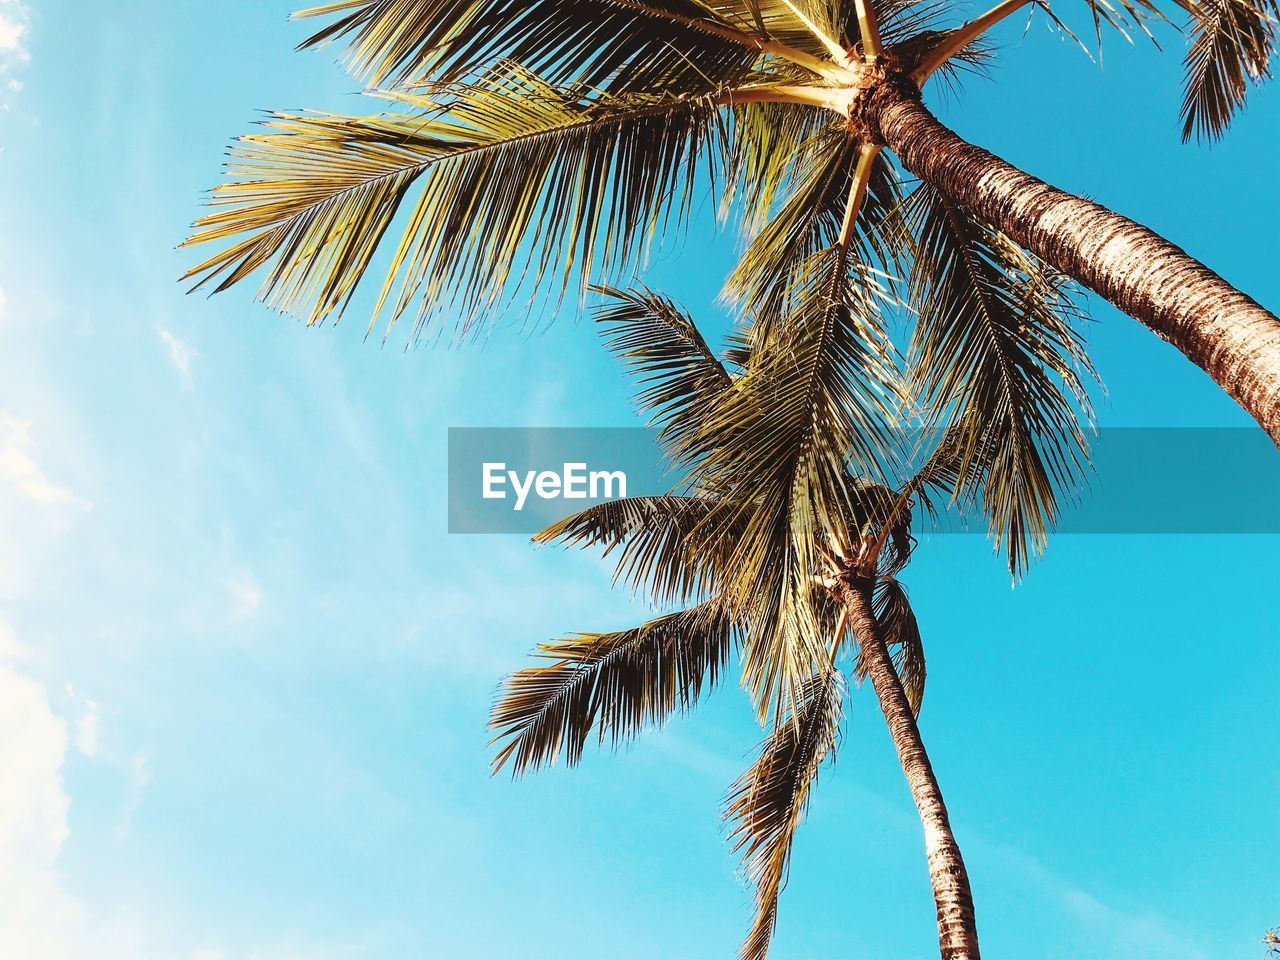 palm tree, tropical climate, sky, low angle view, tree, growth, nature, plant, beauty in nature, coconut palm tree, no people, cloud - sky, leaf, day, trunk, tree trunk, palm leaf, tropical tree, tranquility, blue, outdoors, tall - high, turquoise colored